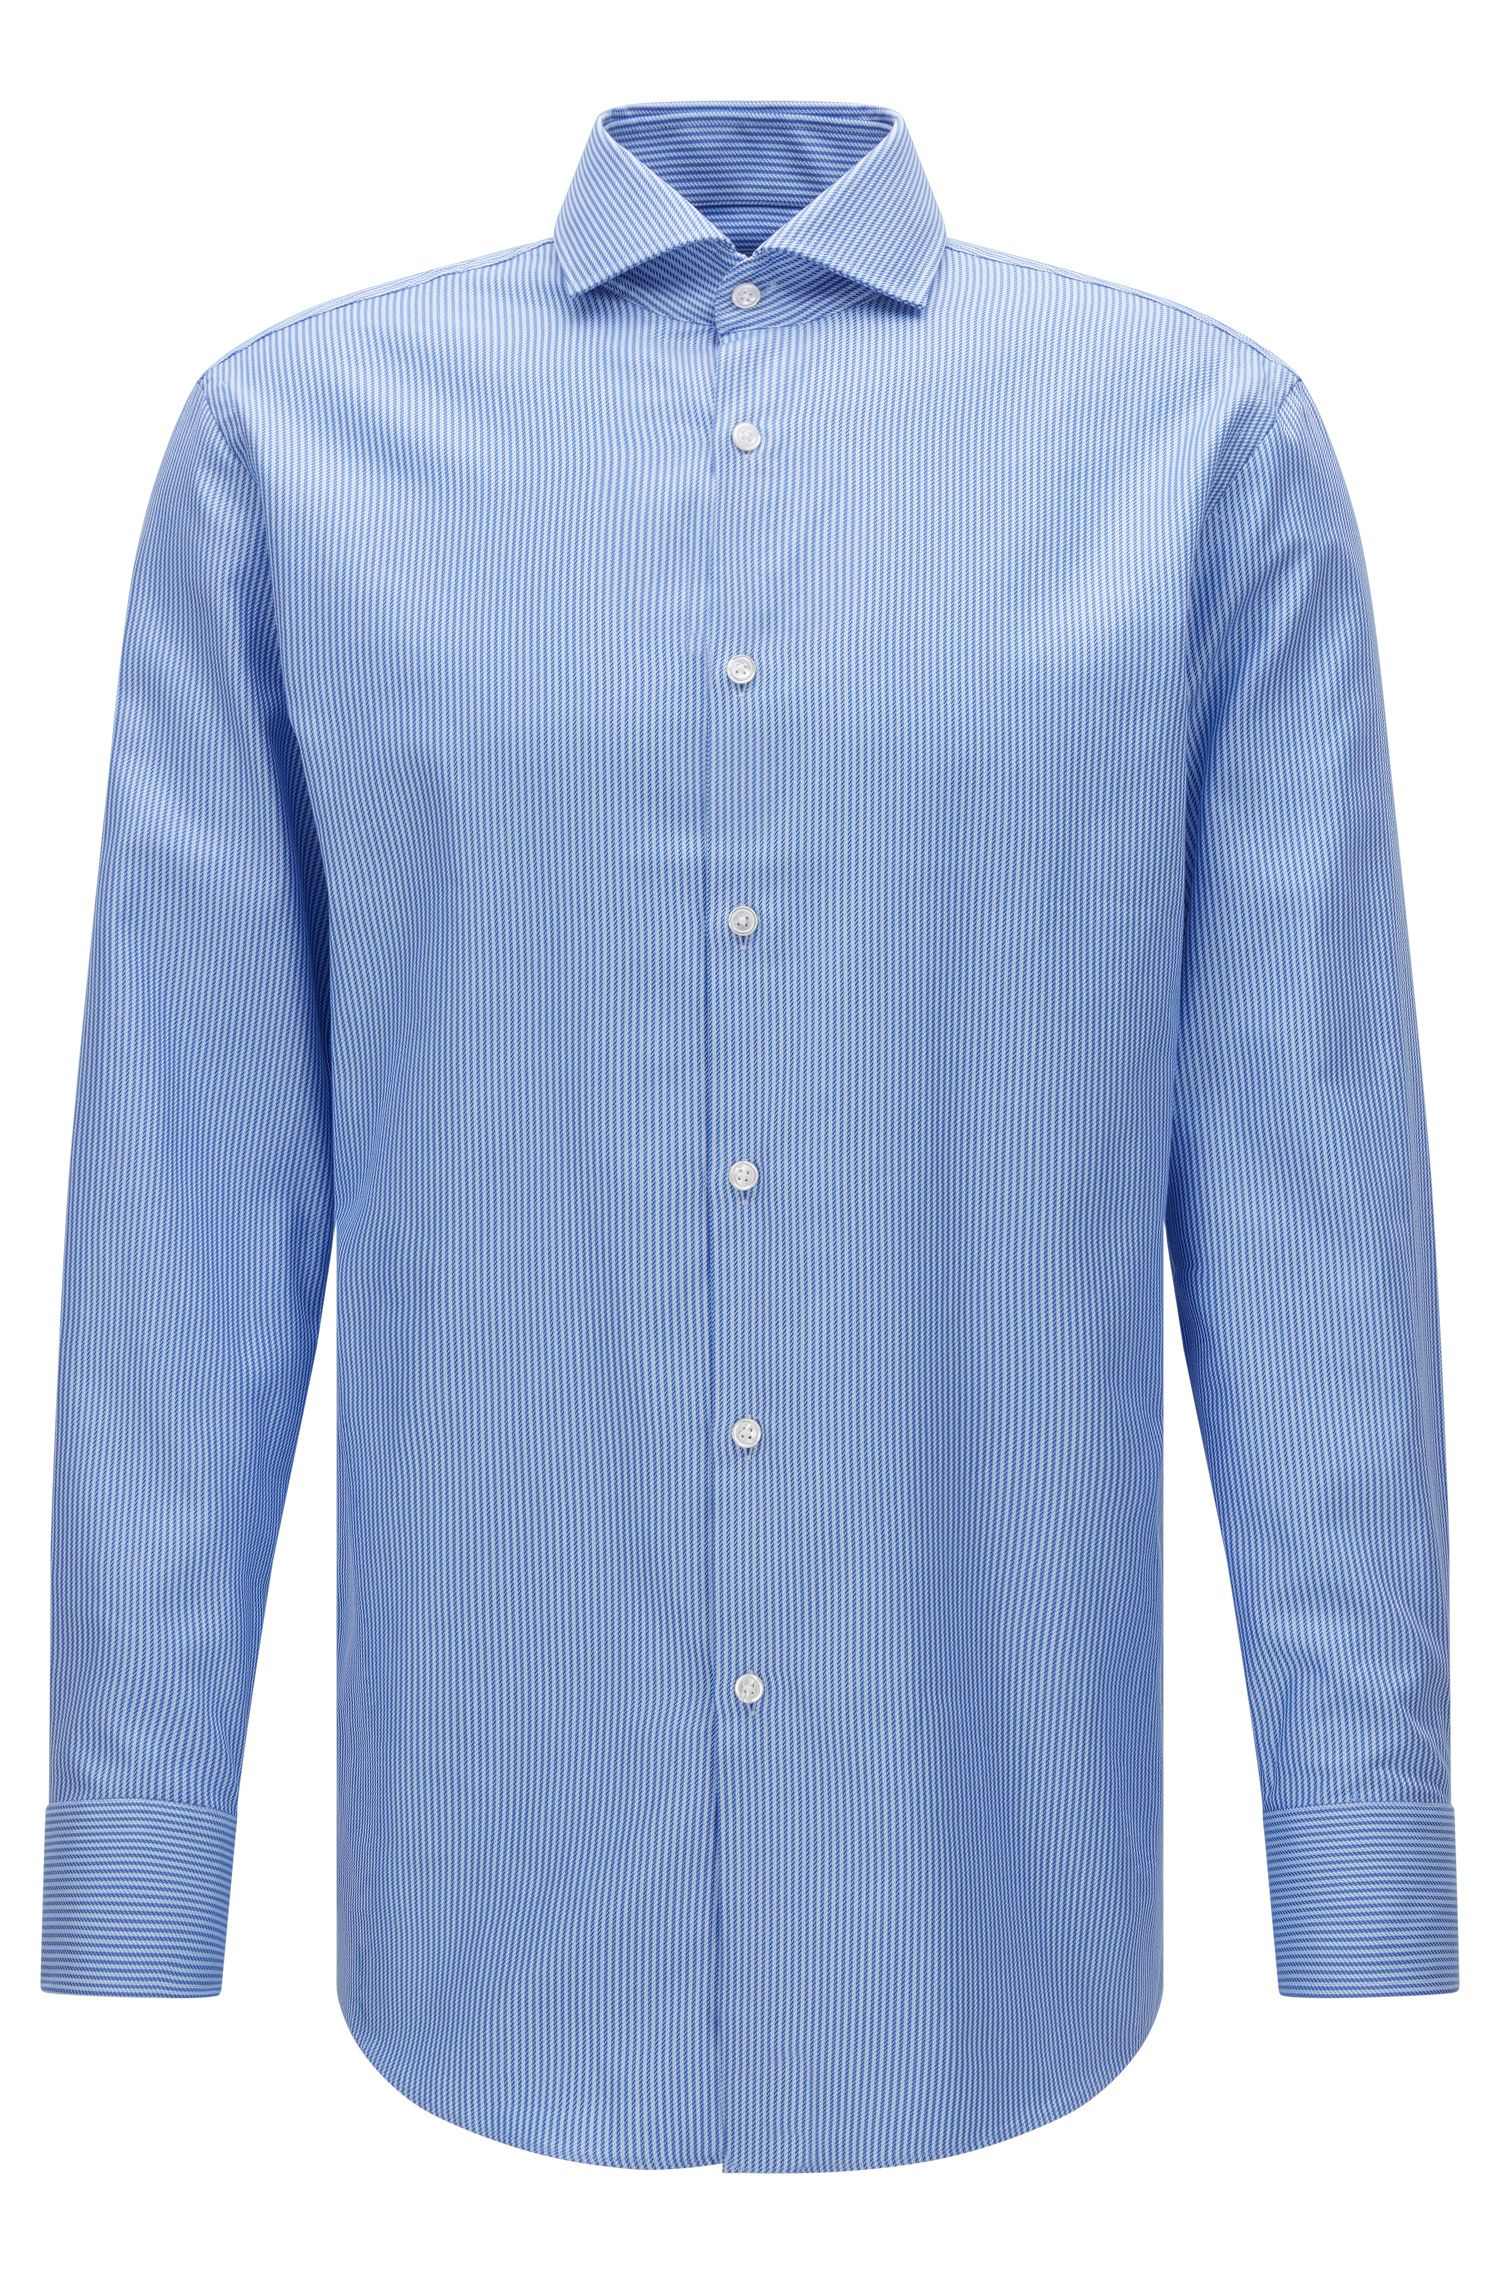 Striped Cotton Dress Shirt, Sharp Fit | Mark US, Blue